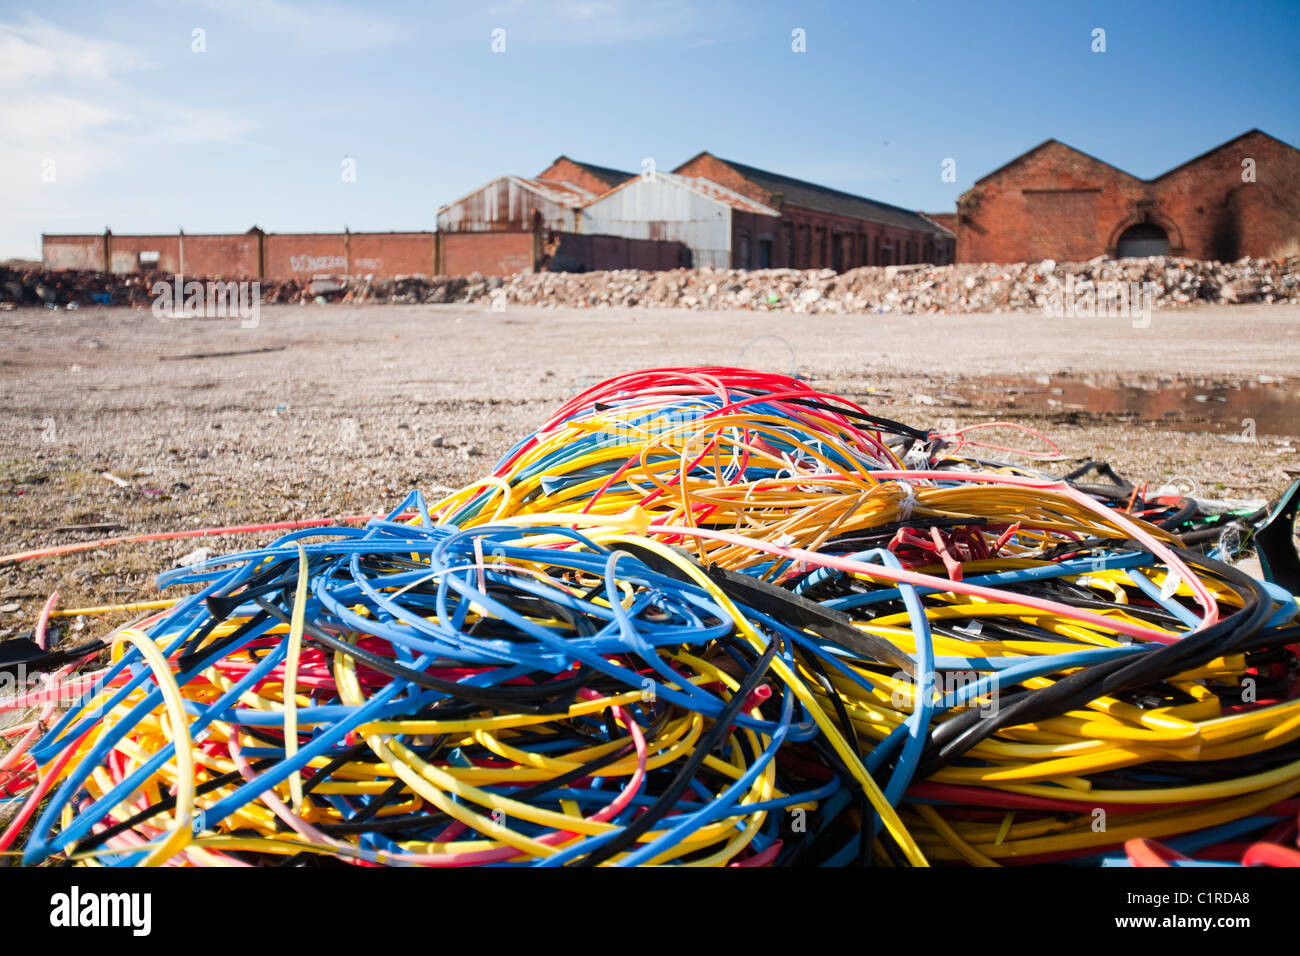 Copper Wire Stock Photos Images Alamy Scrap Harness Stripped By Thieves For Value On Waste Ground In Barrow Furness